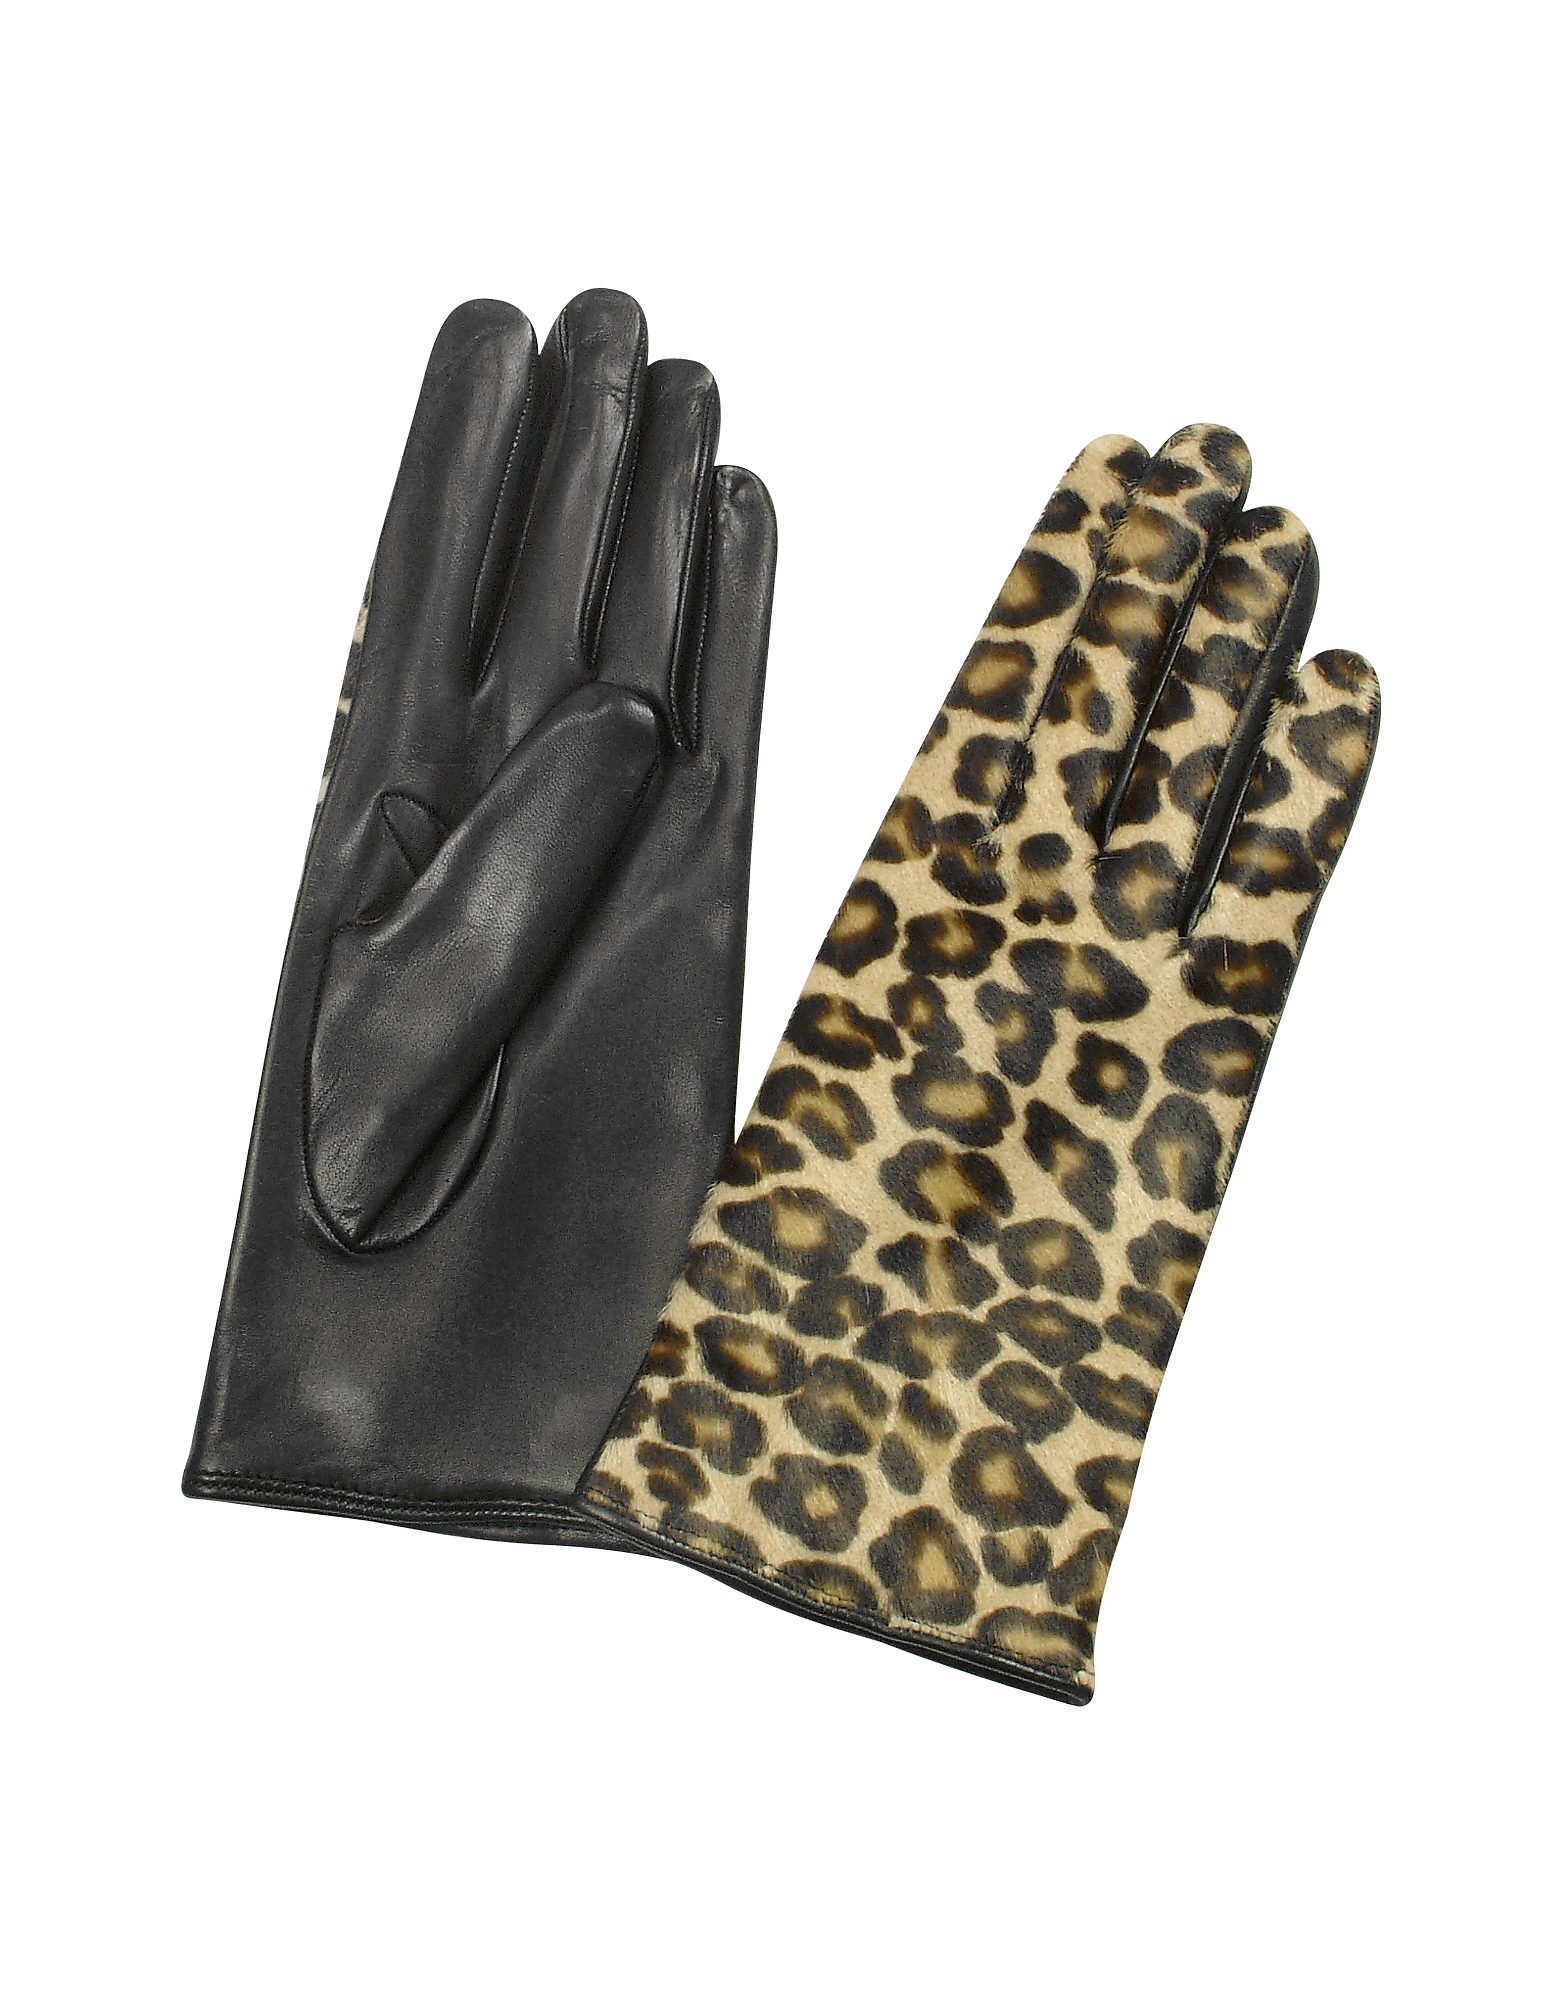 Forzieri Designer Women's Gloves, Women's Leopard Pony Hair and Italian Nappa Leather Gloves